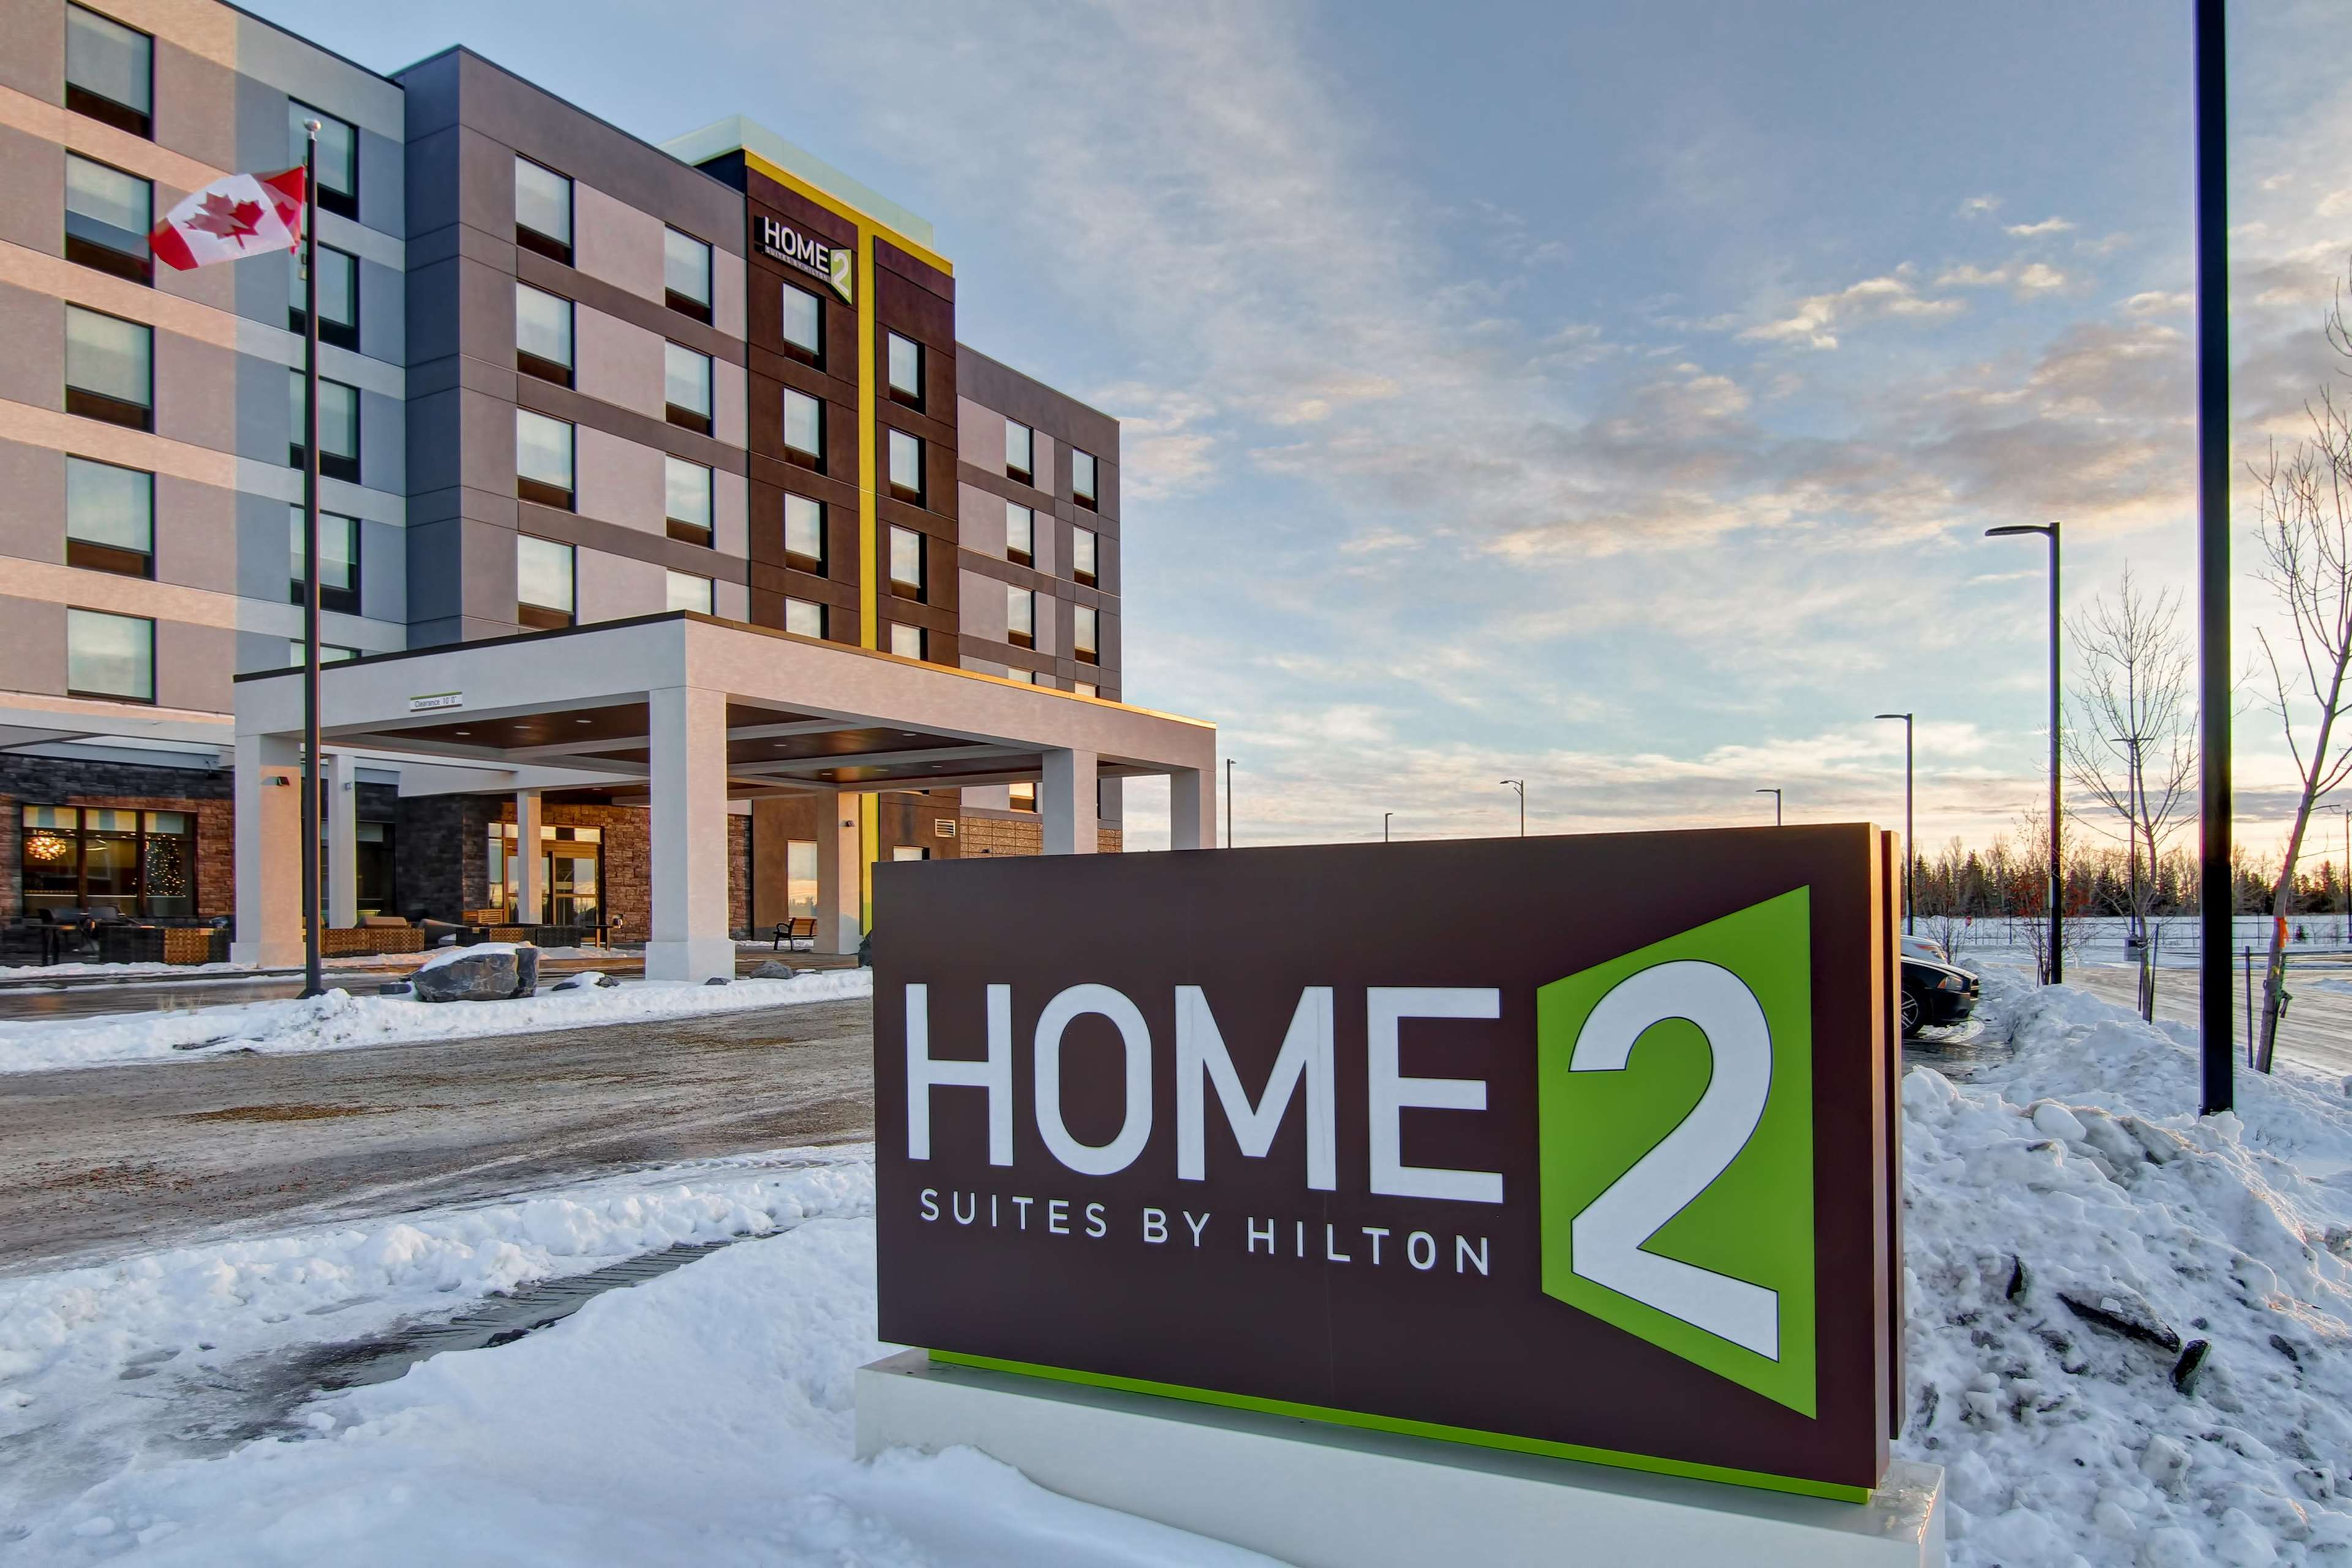 Home2 Suites by Hilton Edmonton South - Edmonton, AB T6W 2P6 - (780)250-3000 | ShowMeLocal.com